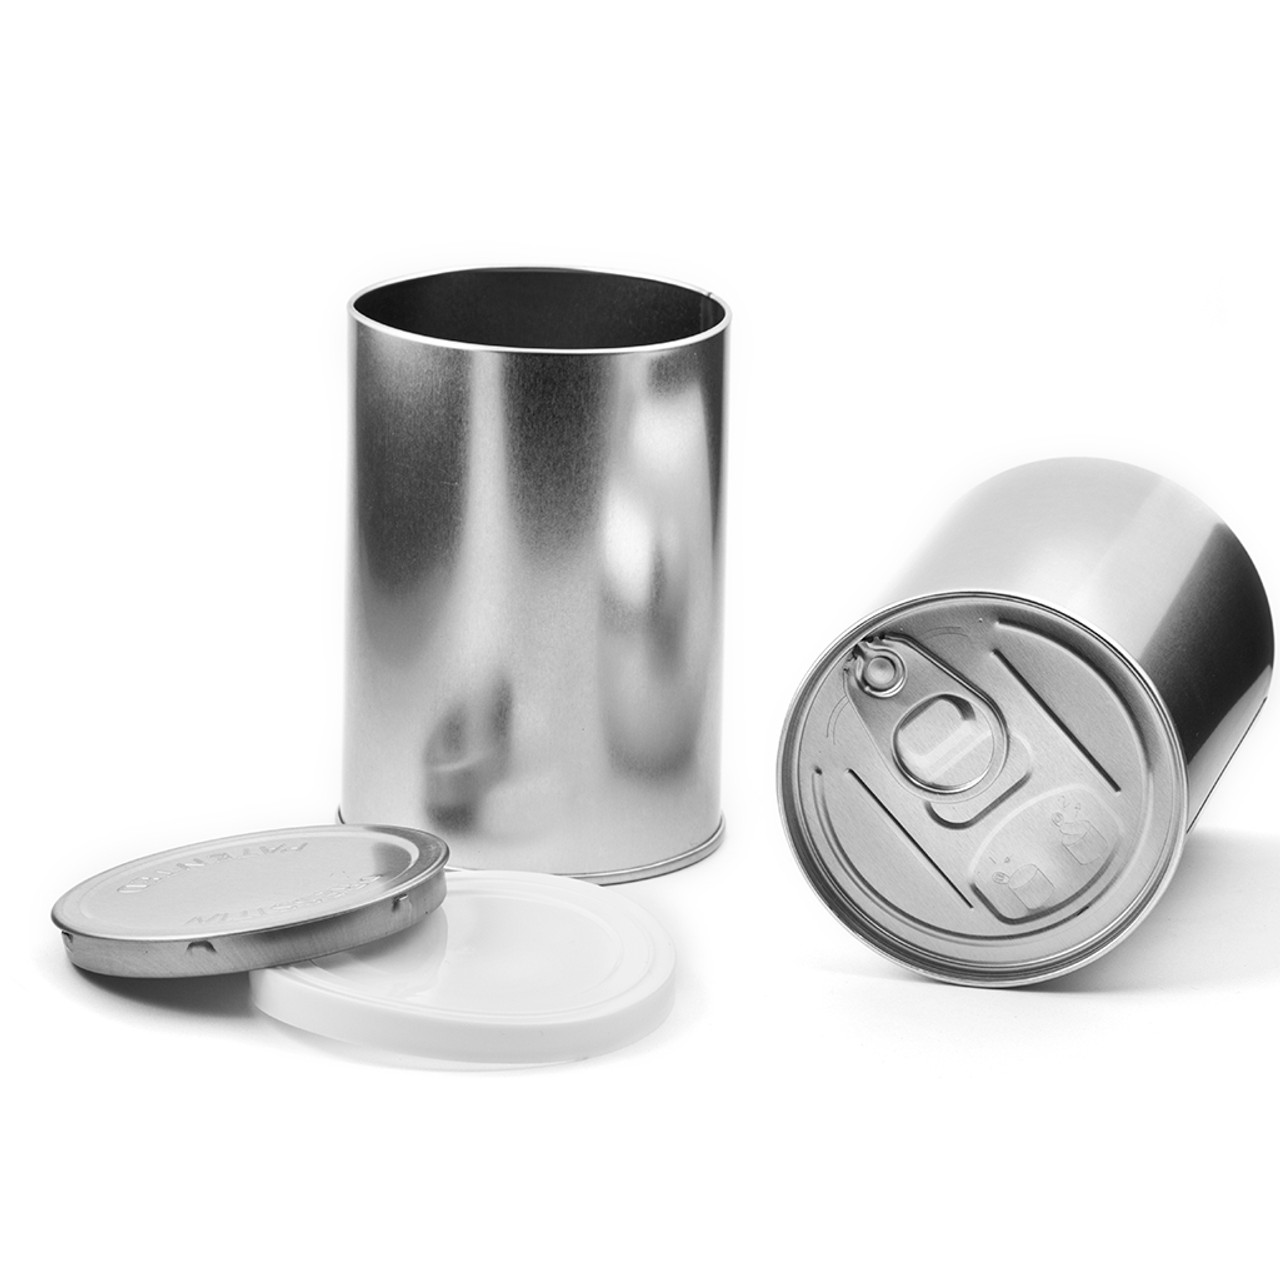 Baked Bean Tin With Ring Pull Lid